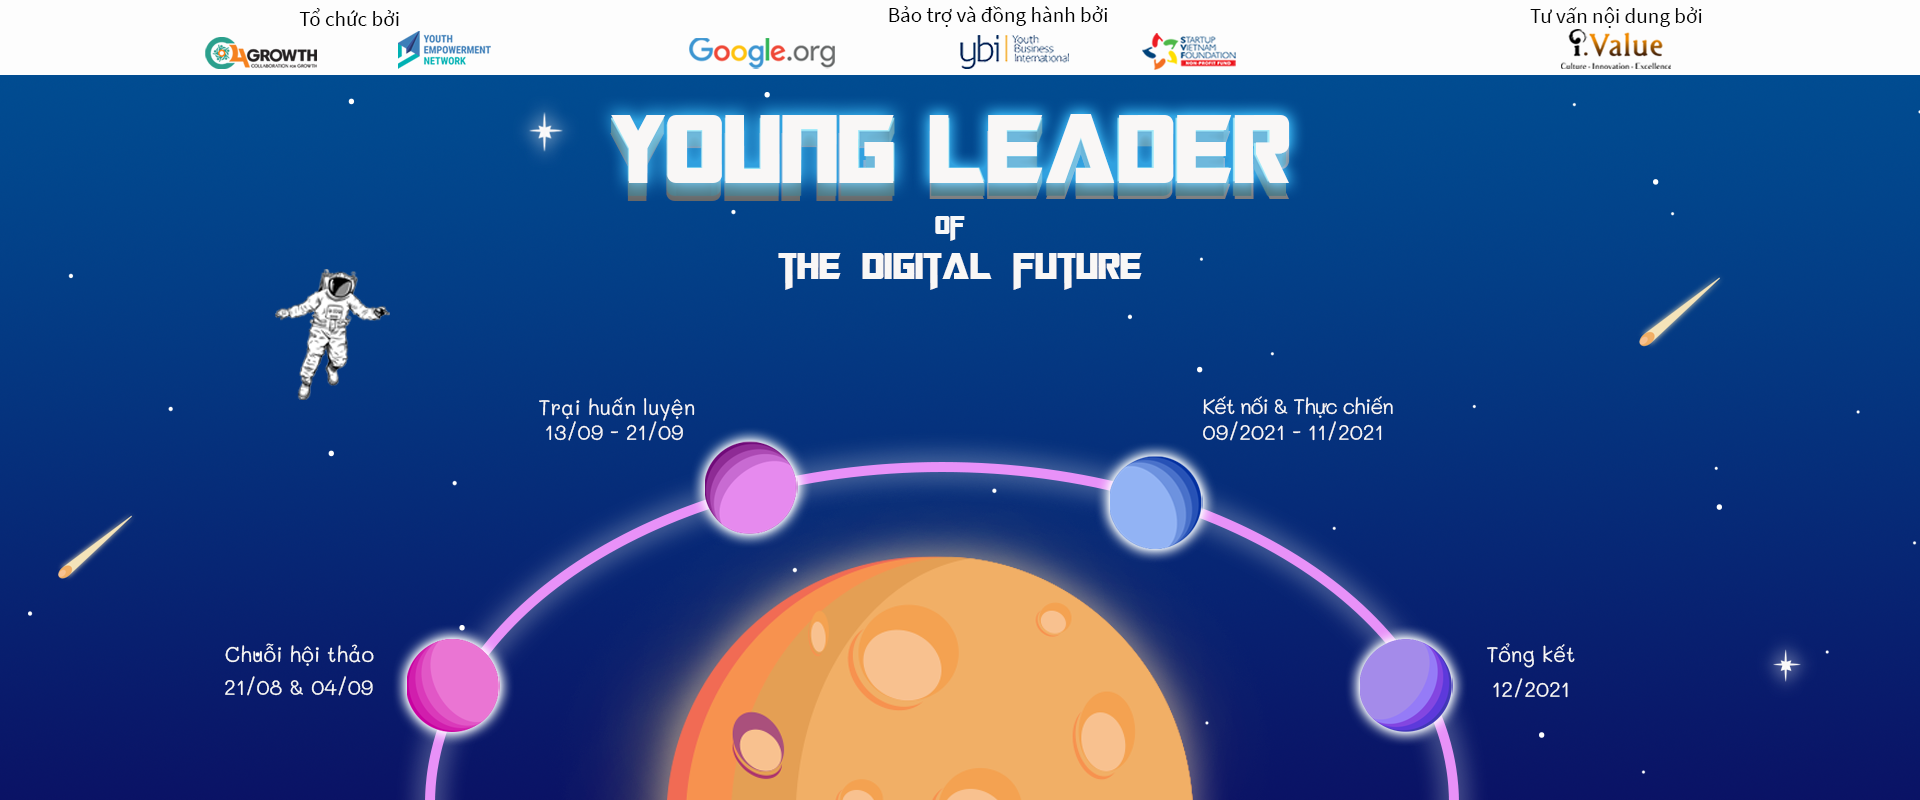 Young leader for the digital future